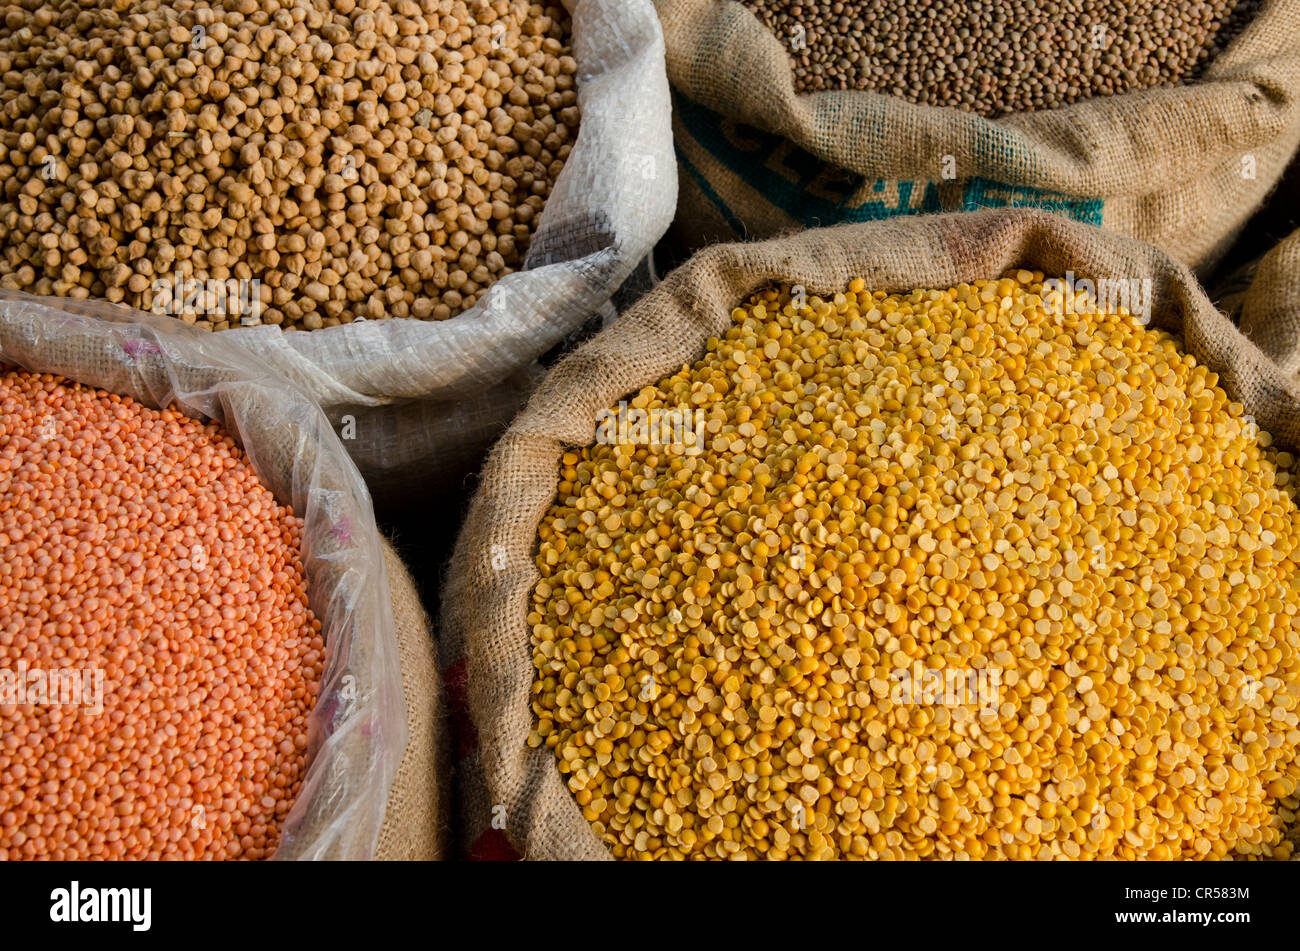 Moong Dhal, Urid Dhal and other types of lentils for sale on the market in the suburb of Paharganj, New Delhi, India, - Stock Image